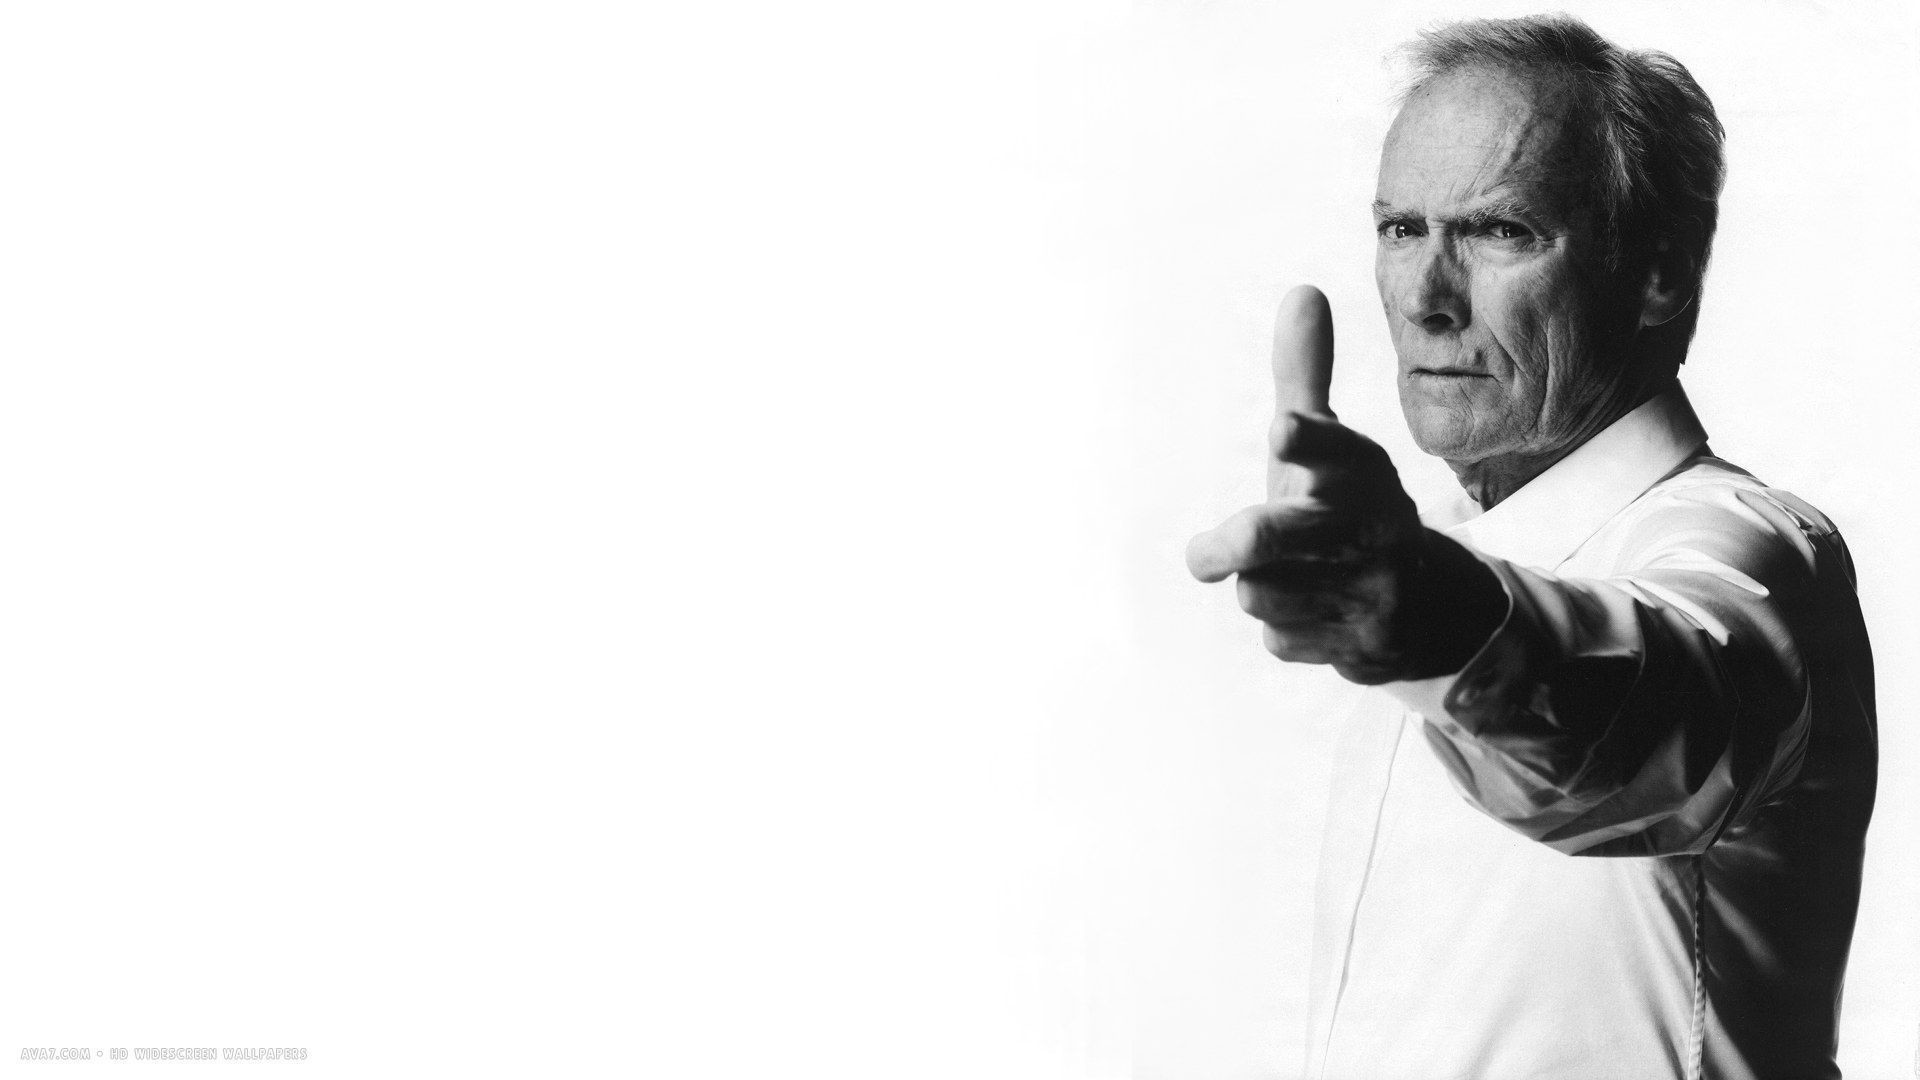 1920x1080 go ahead make my day clint eastwood Wallpaper HD Wallpaper